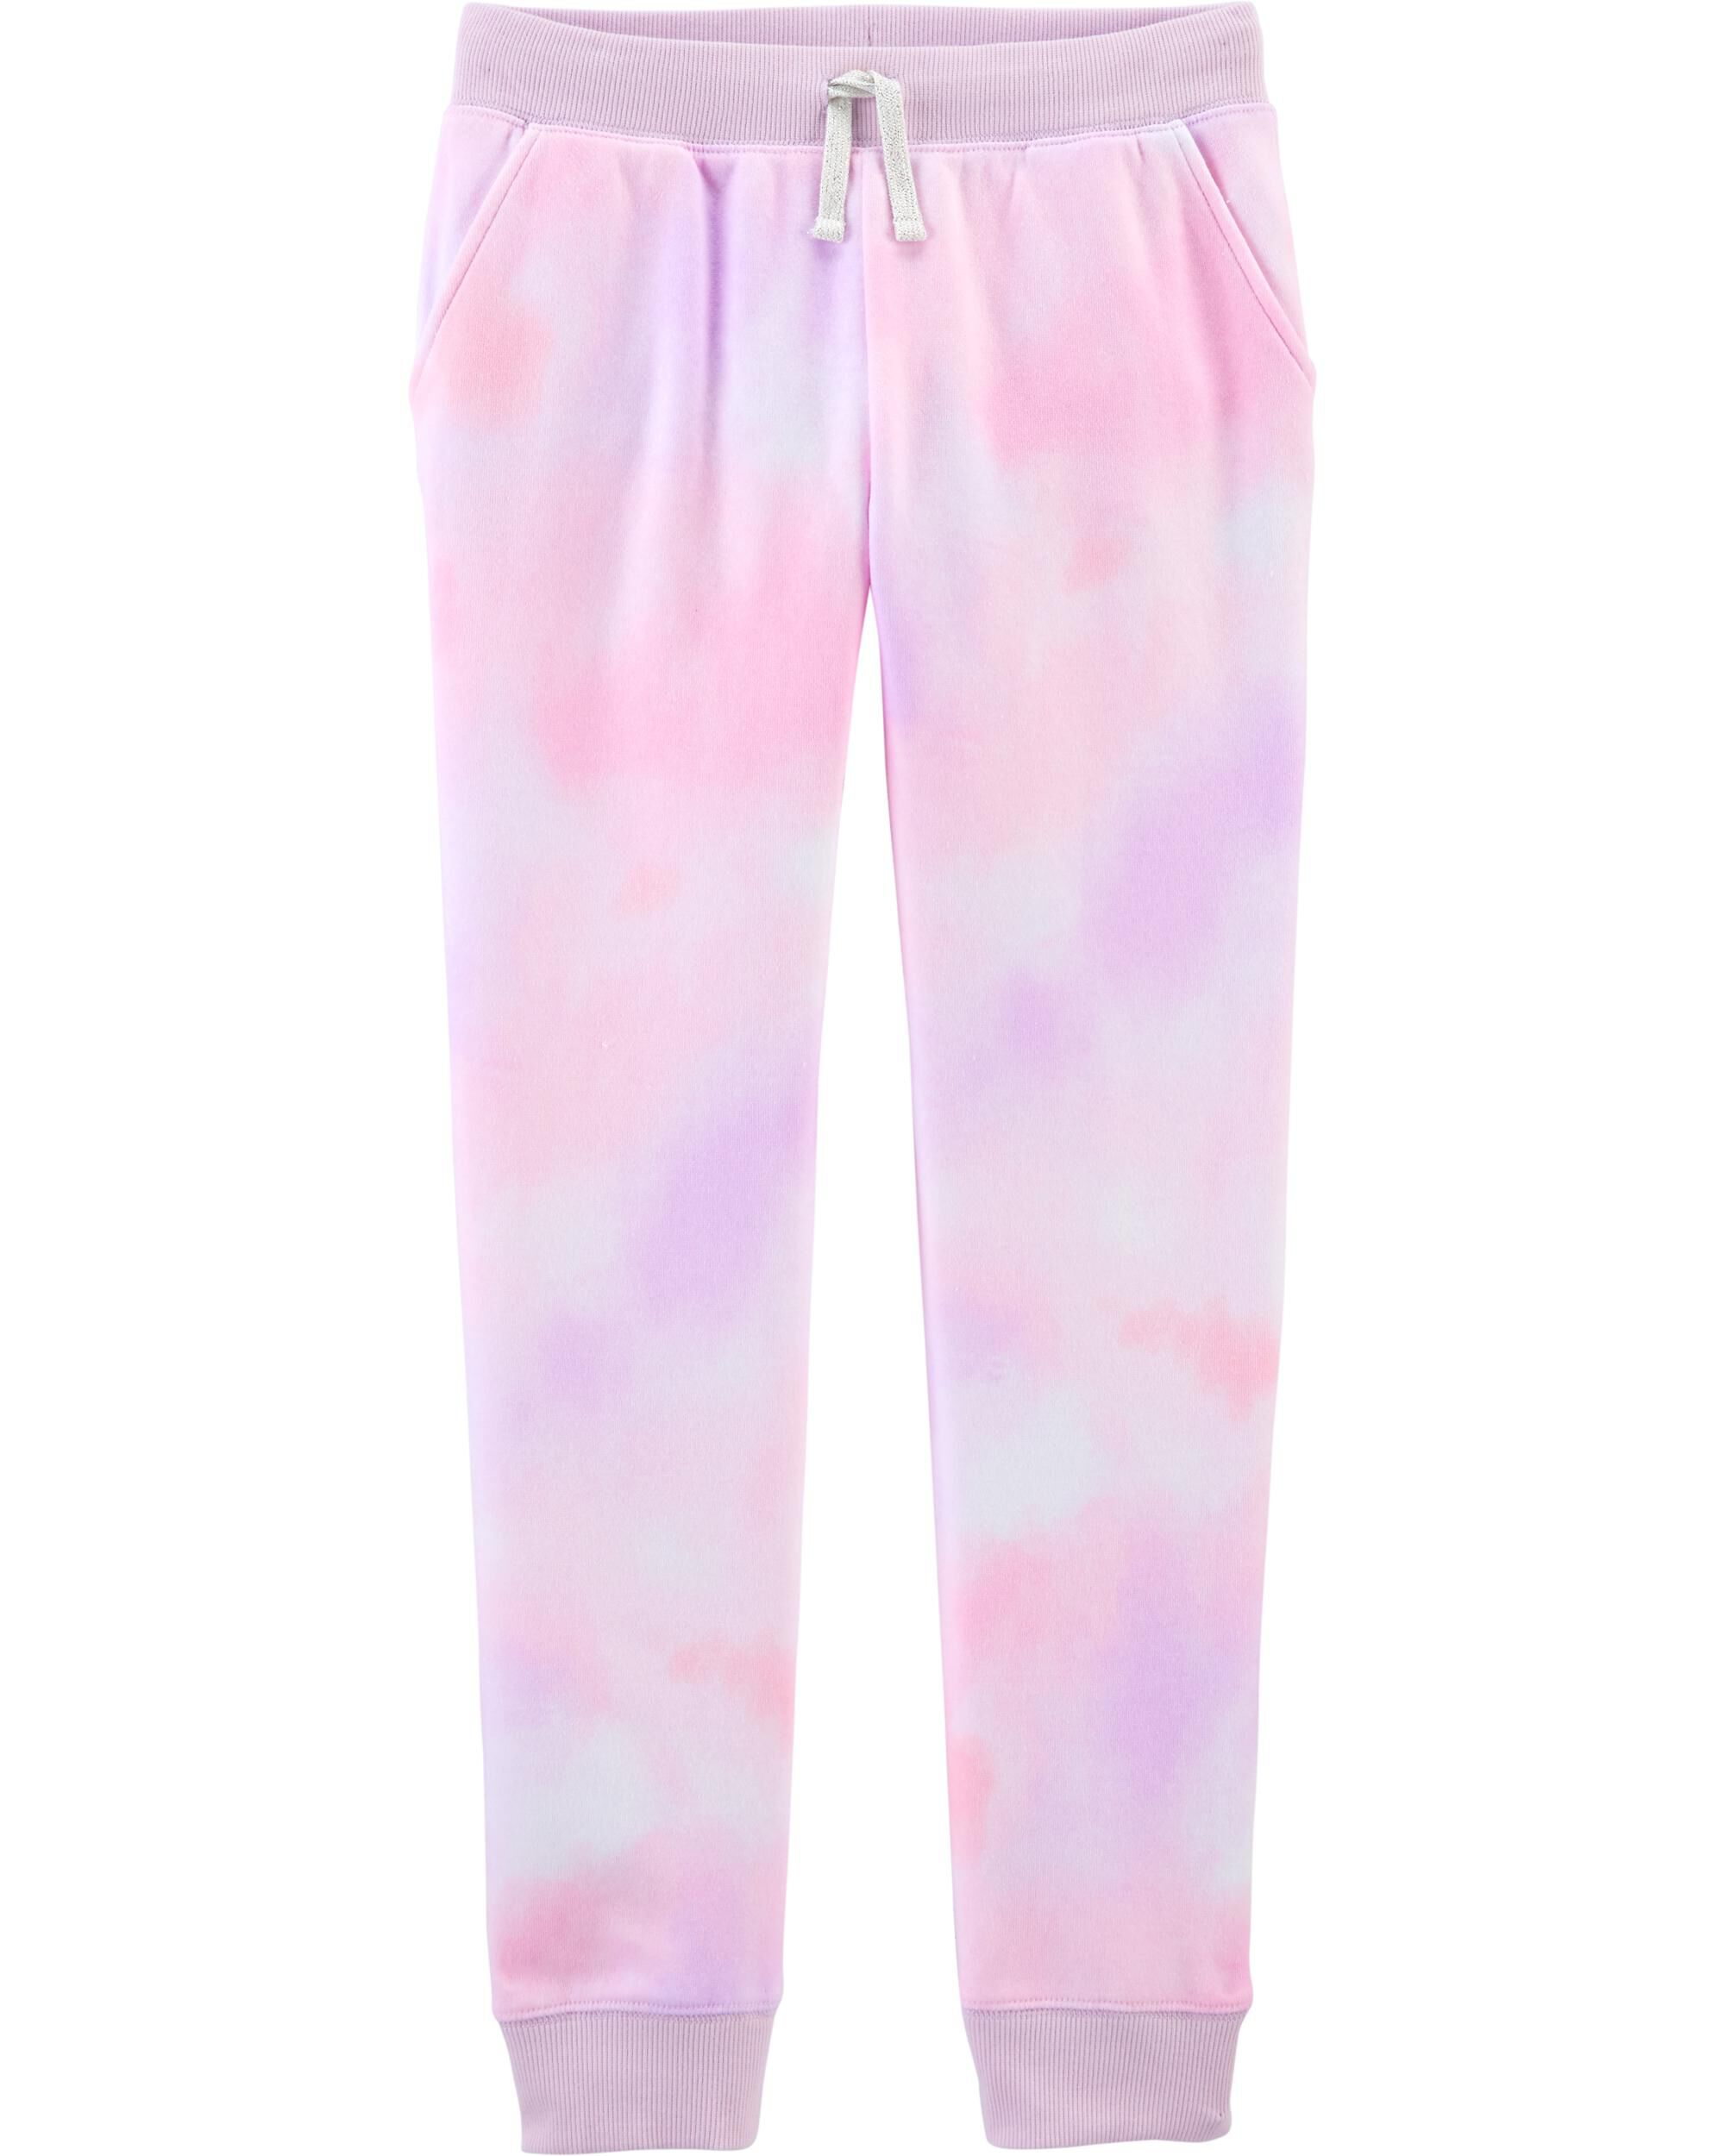 Tie-Dye Fleece Pants